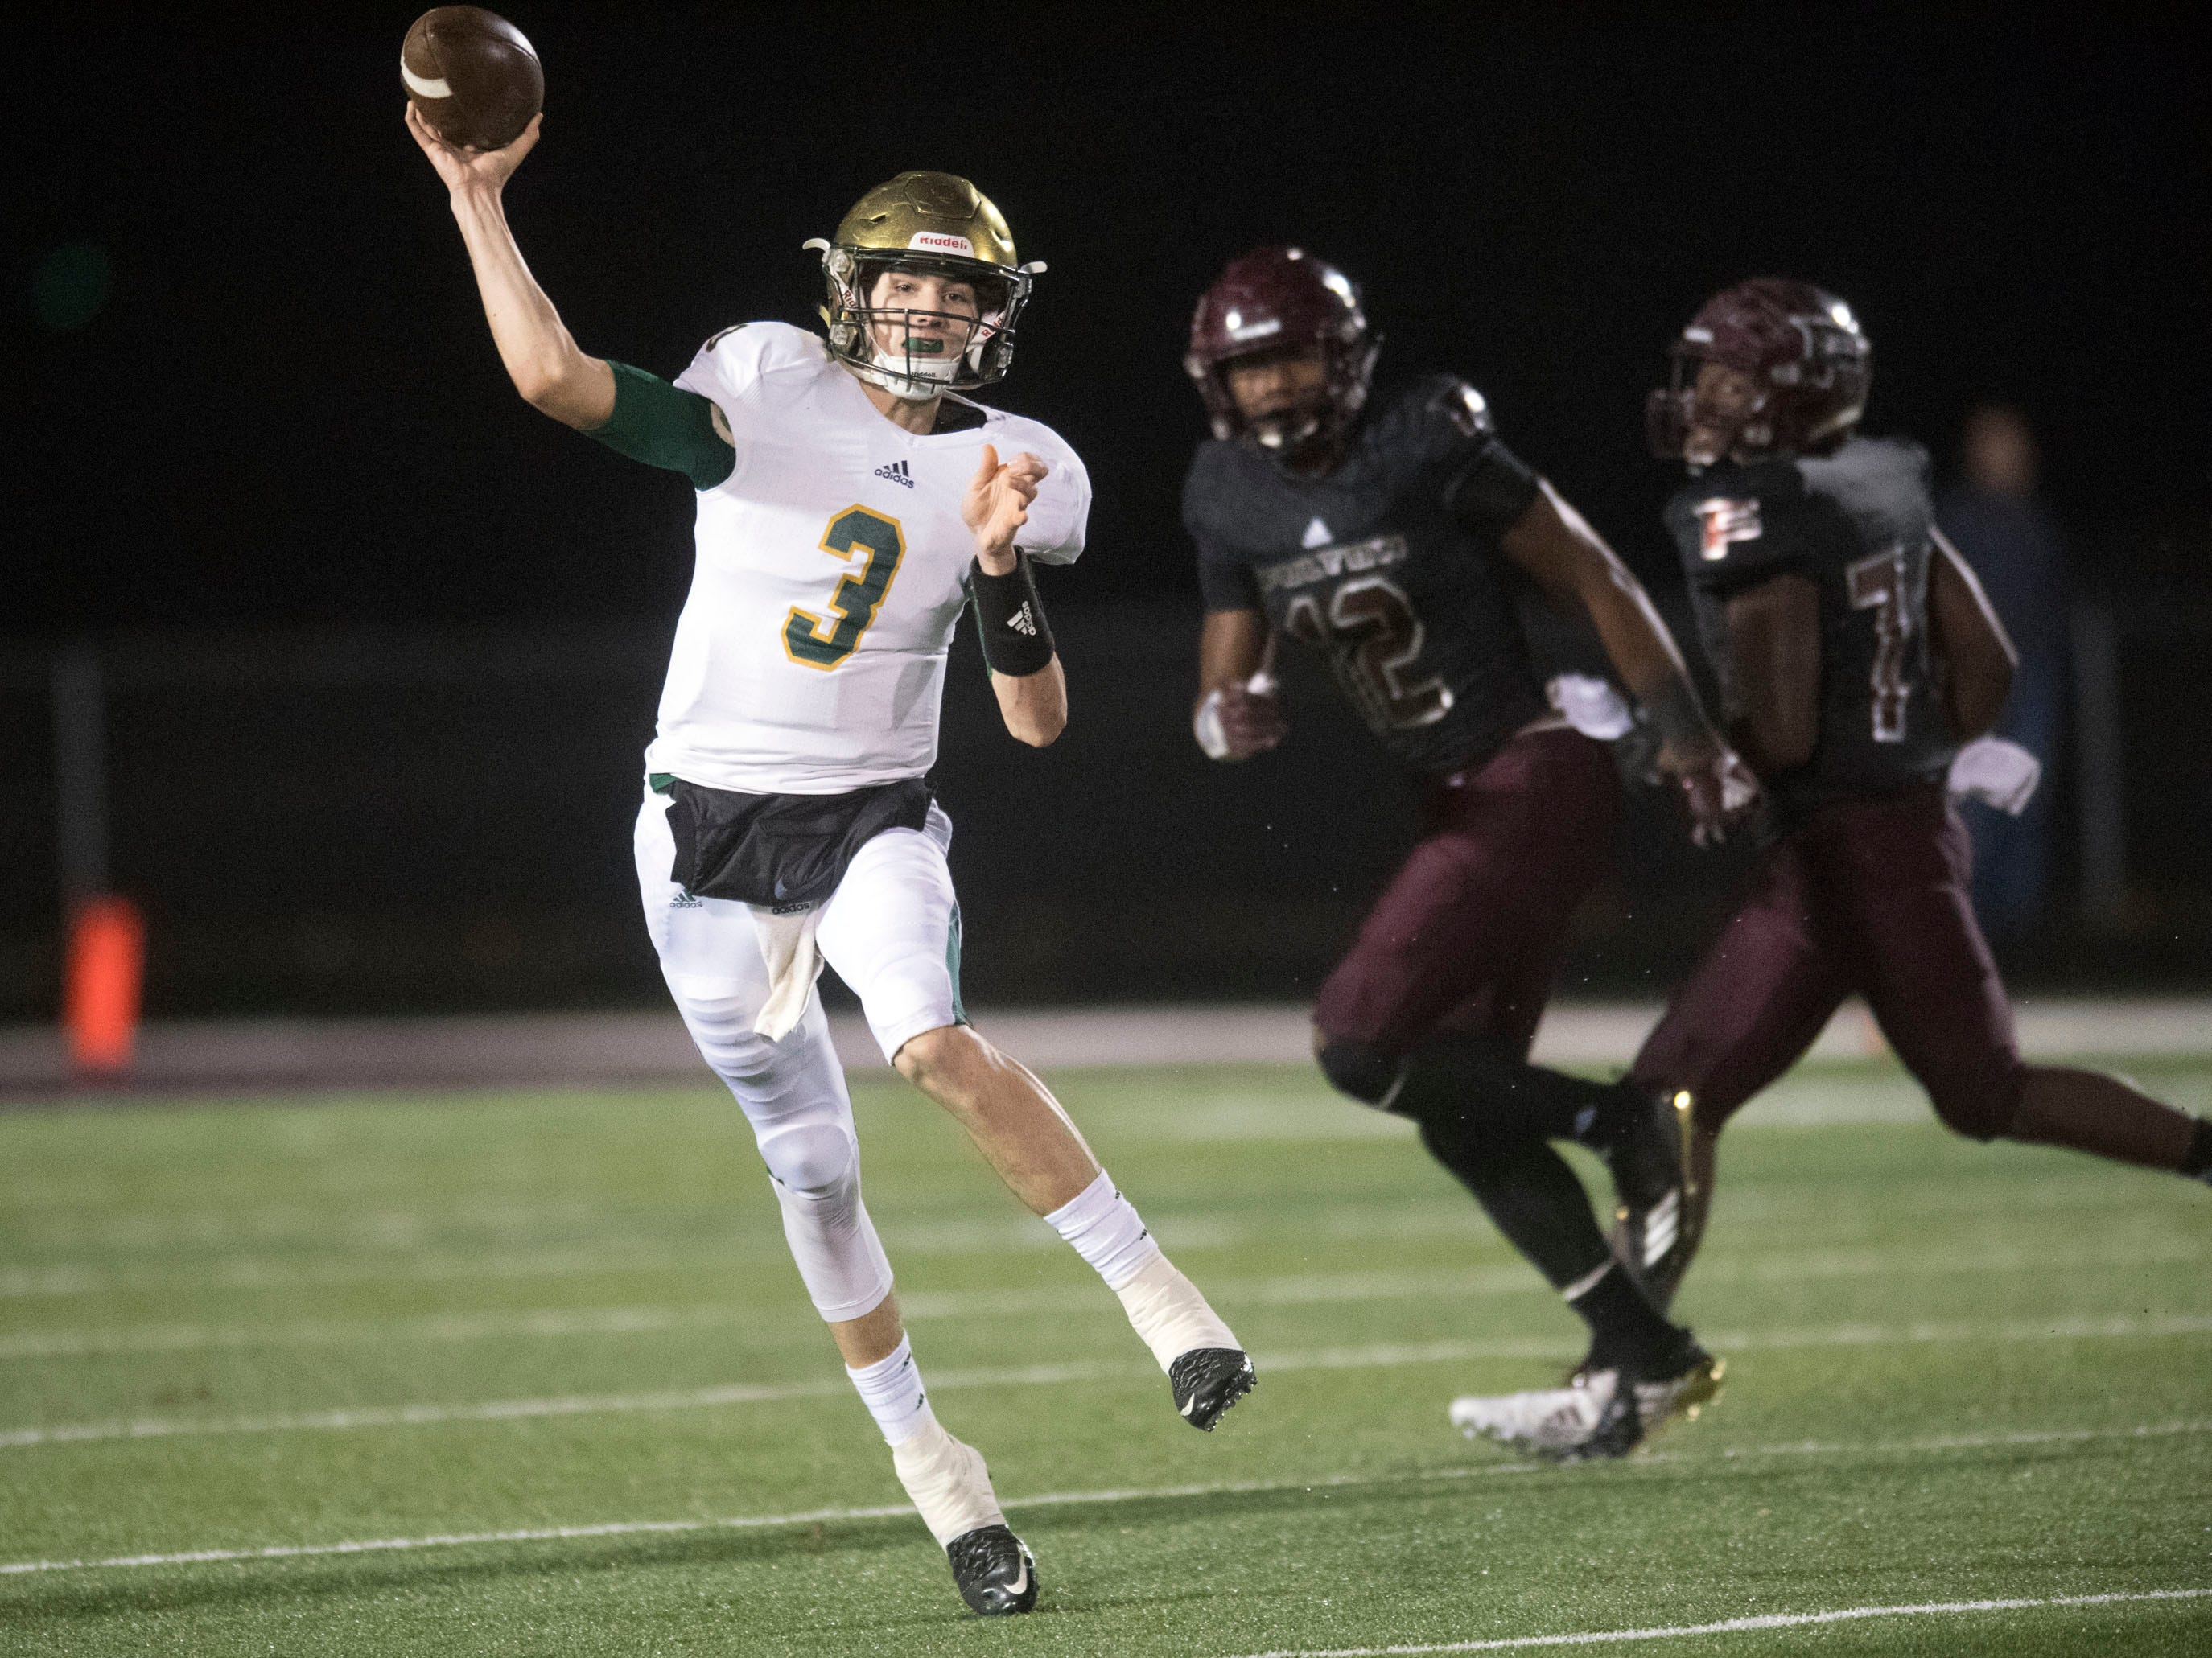 Knoxville Catholic's Jack Jancek (3) throws to a receiver. Knoxville Catholic beat Fulton, 28-25 in the second round of the Class 5A playoffs on Friday, November 9, 2018.